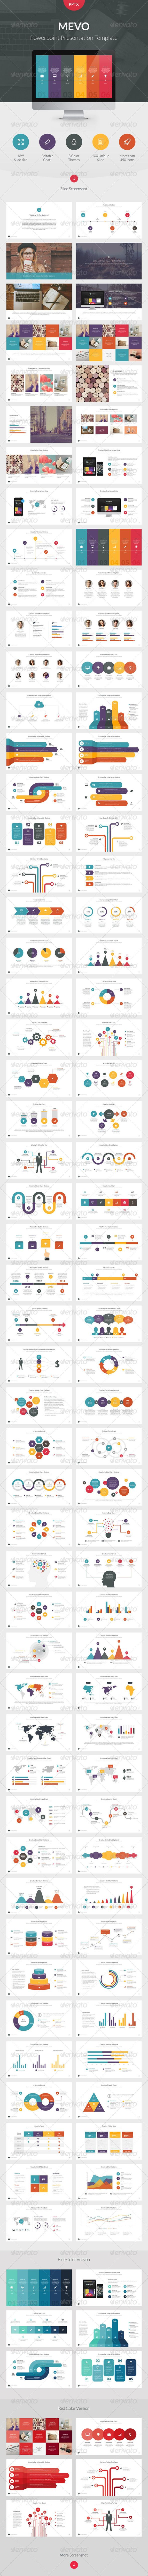 Mevo Powerpoint Presentation Template